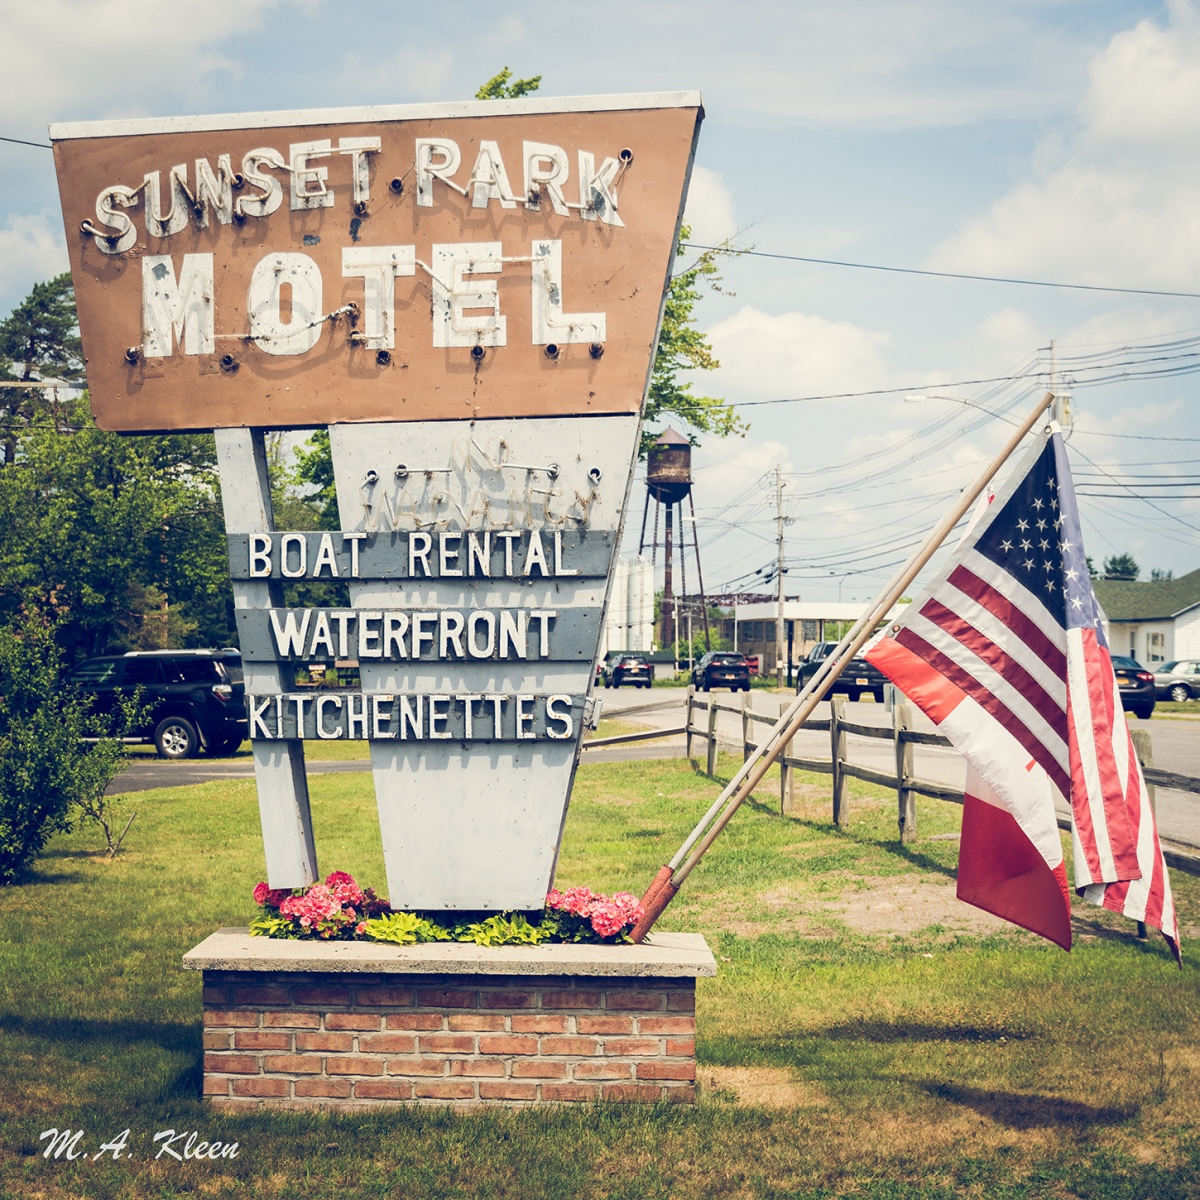 The Sunset Park Motel, at 71 Demars Blvd in Tupper Lake, New York, is a classic motor inn catering to vacationing families in the Adirondacks.